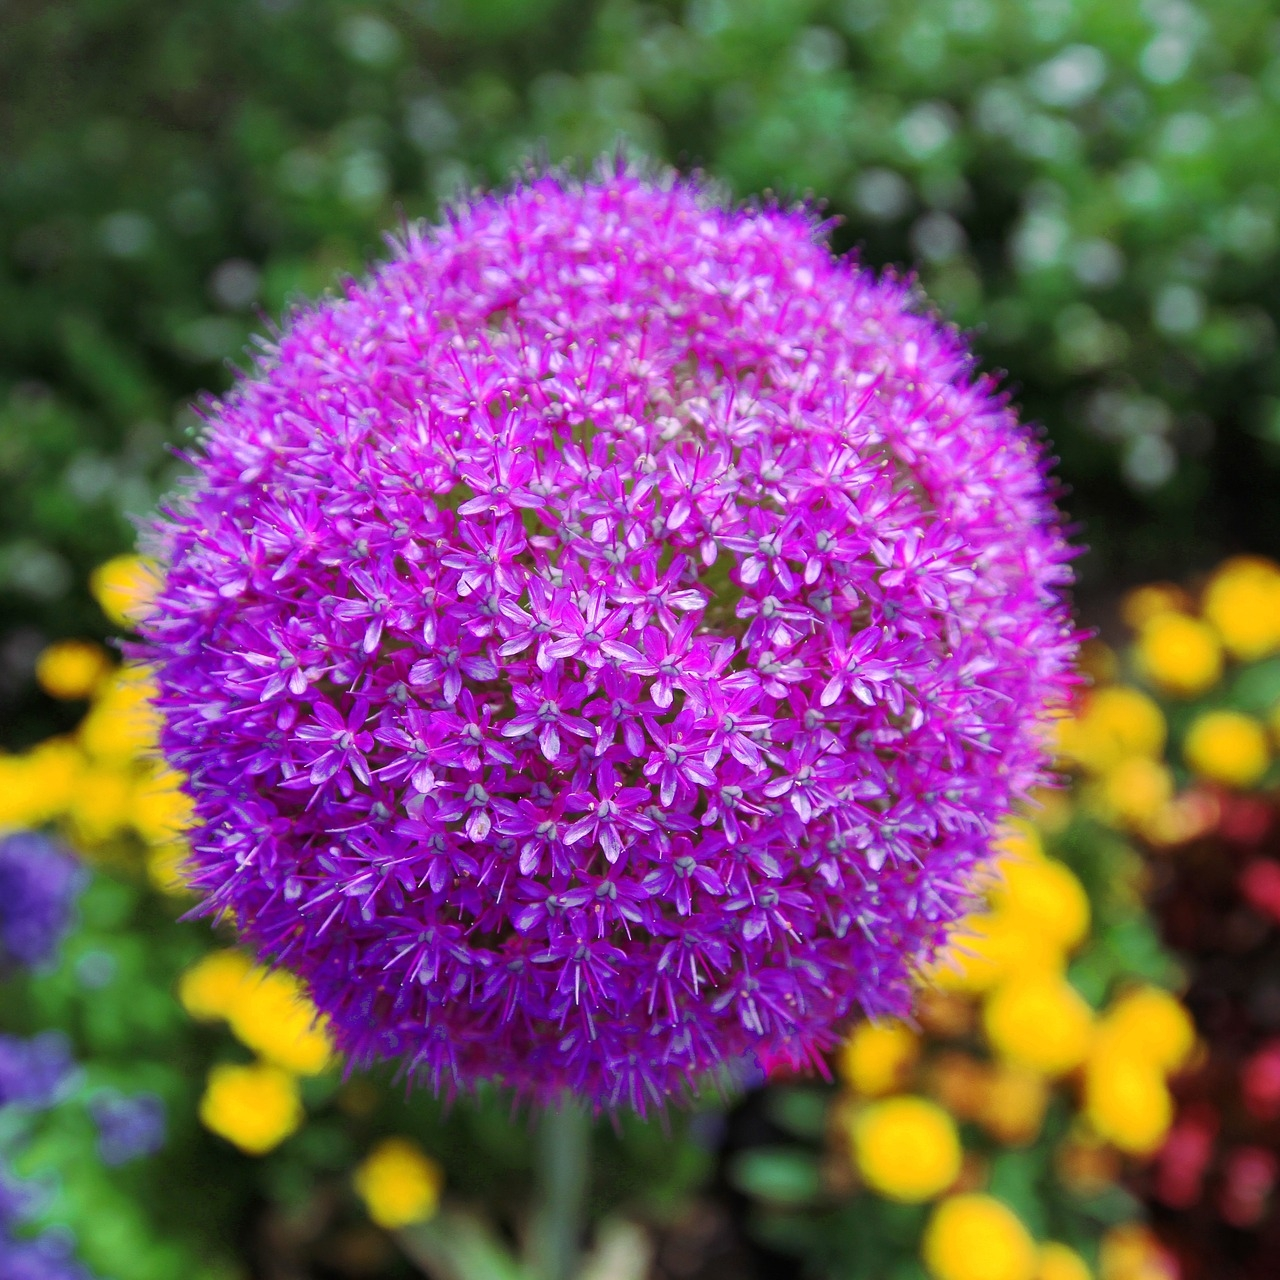 """Allium 'Gladitor' (Flowering Onion) - Zone: 4-9Bloom Size: 7-8"""" acrossHeight: 3-4' tallPlant: 6"""" deepSpace: 6-8"""" apartSun/Shade: Full sunBloom Time: May-JunePlacement: Place behind peonies or other big-leaf spring blooming perennials to hide foliage after flowers are spent."""